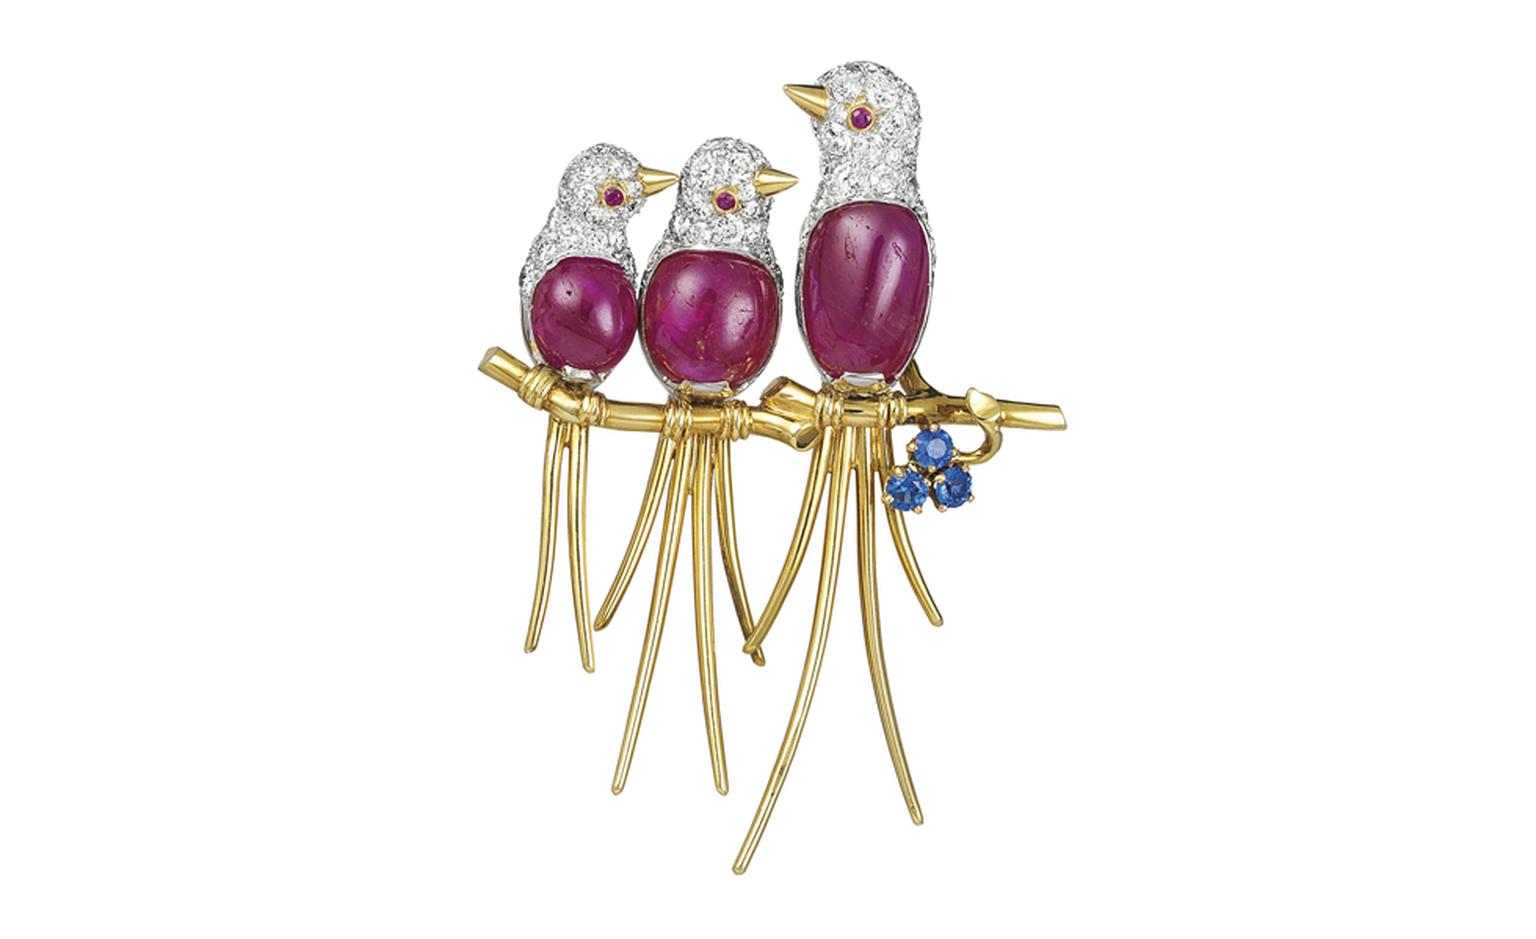 Van Cleef & Arpels Lovebirds clip. Gold, rubies, sapphires & diamonds, 1954. Formerly in Her Imperial Highness Princess Soraya of Iran's Collection.